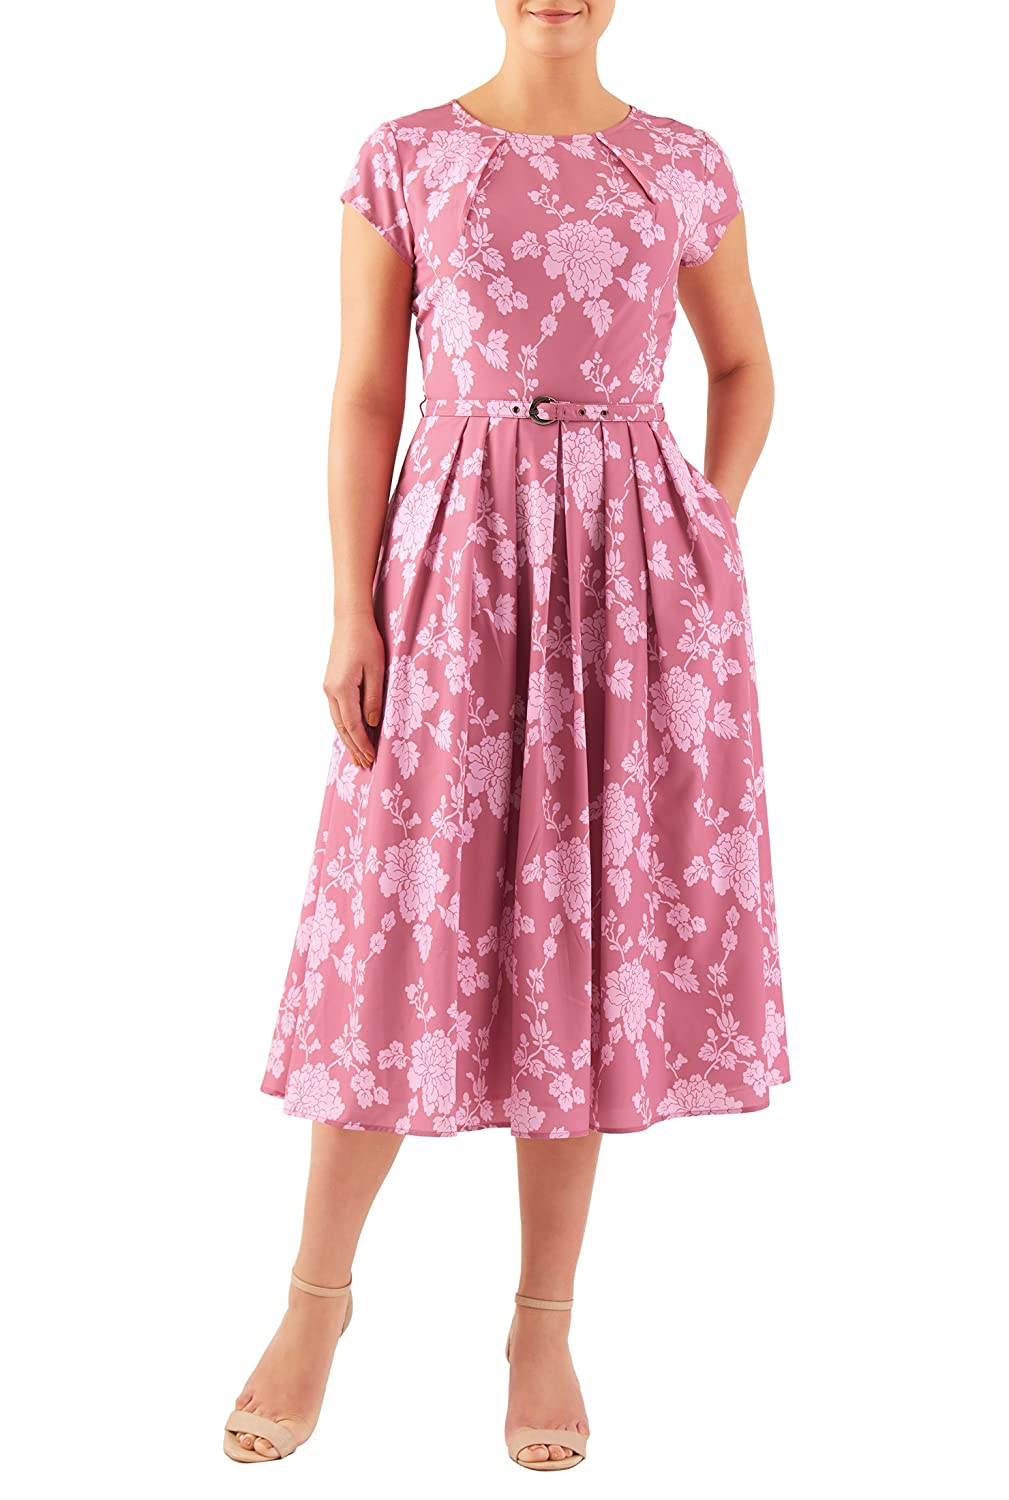 1950s Day Dresses eShakti Womens Pleat neck belted floral print crepe dress $59.95 AT vintagedancer.com